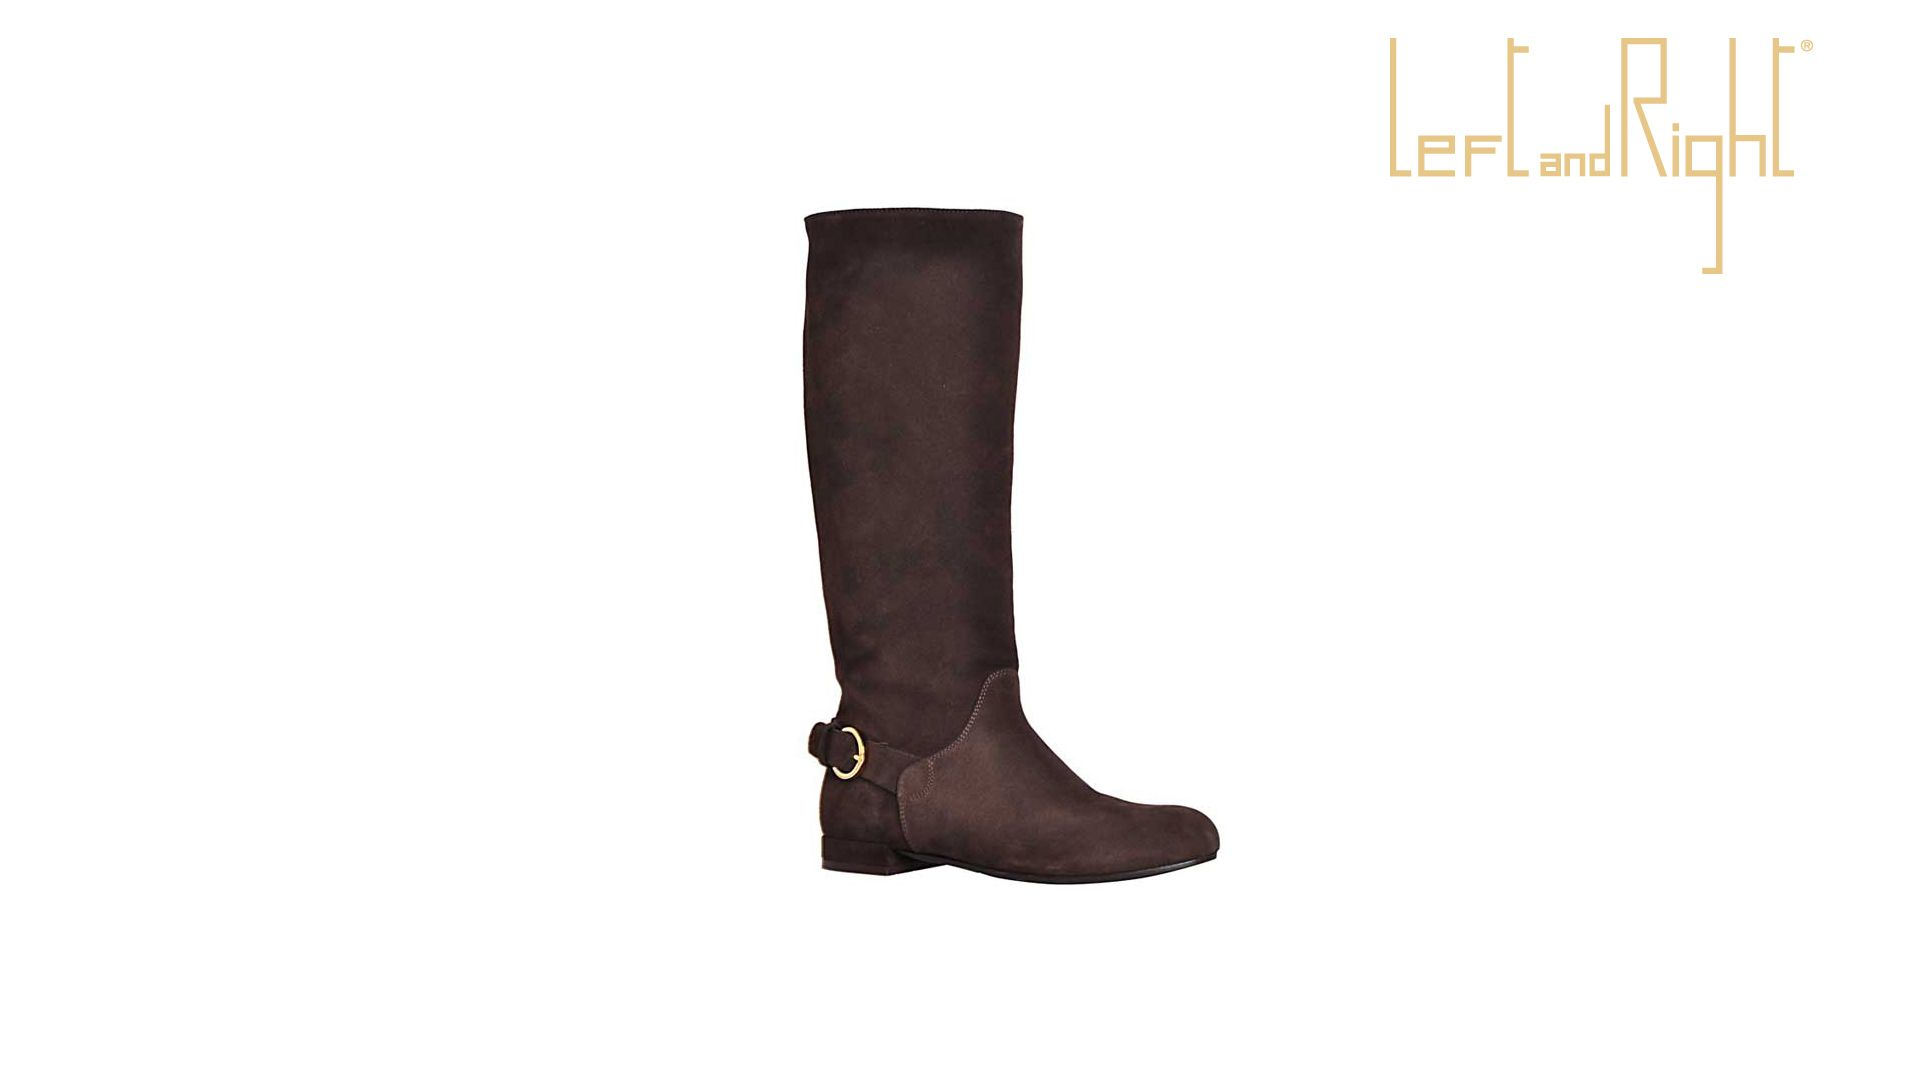 Calf crust boot dark brown, leather sole with rubber injection on the plant.